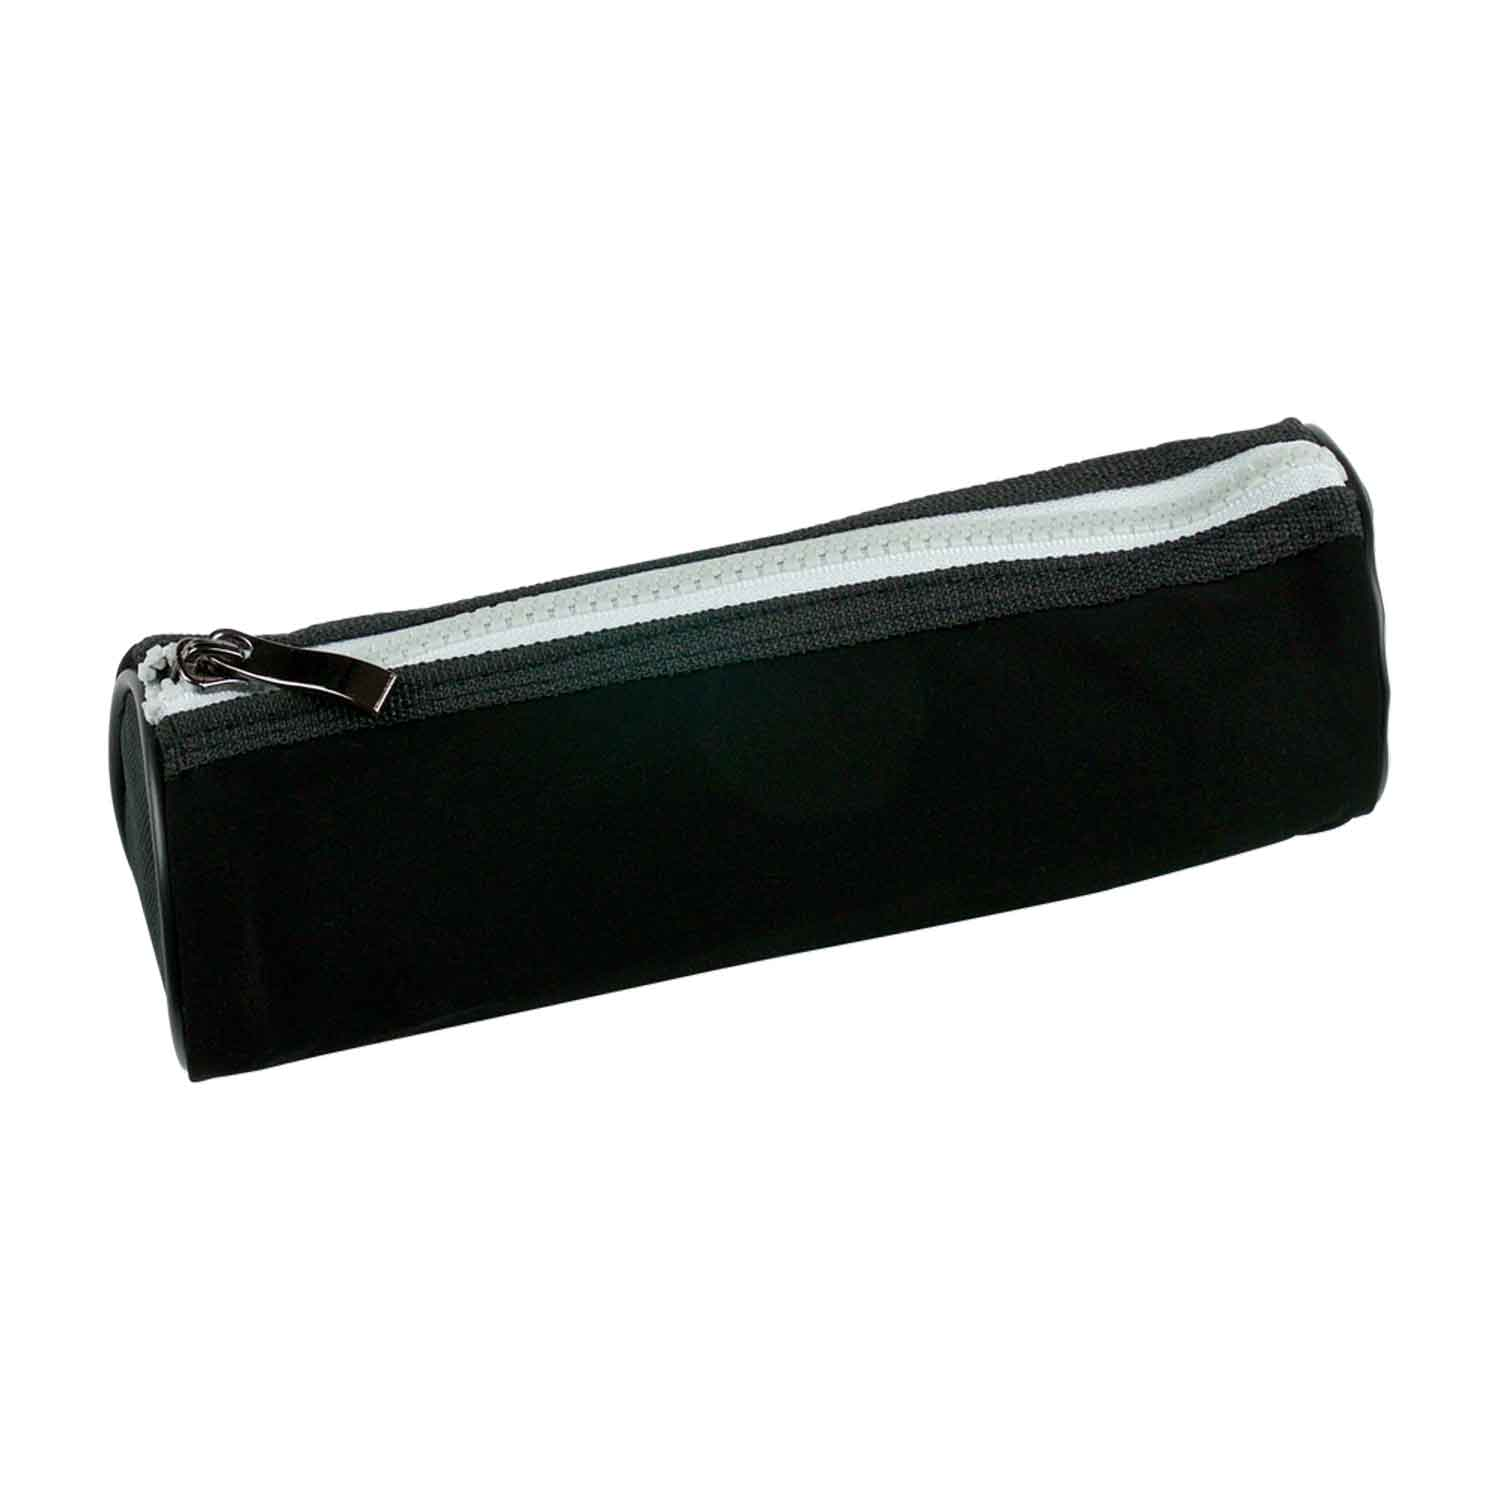 Cylinder Pencil Case - Black/Red - Pack of 12